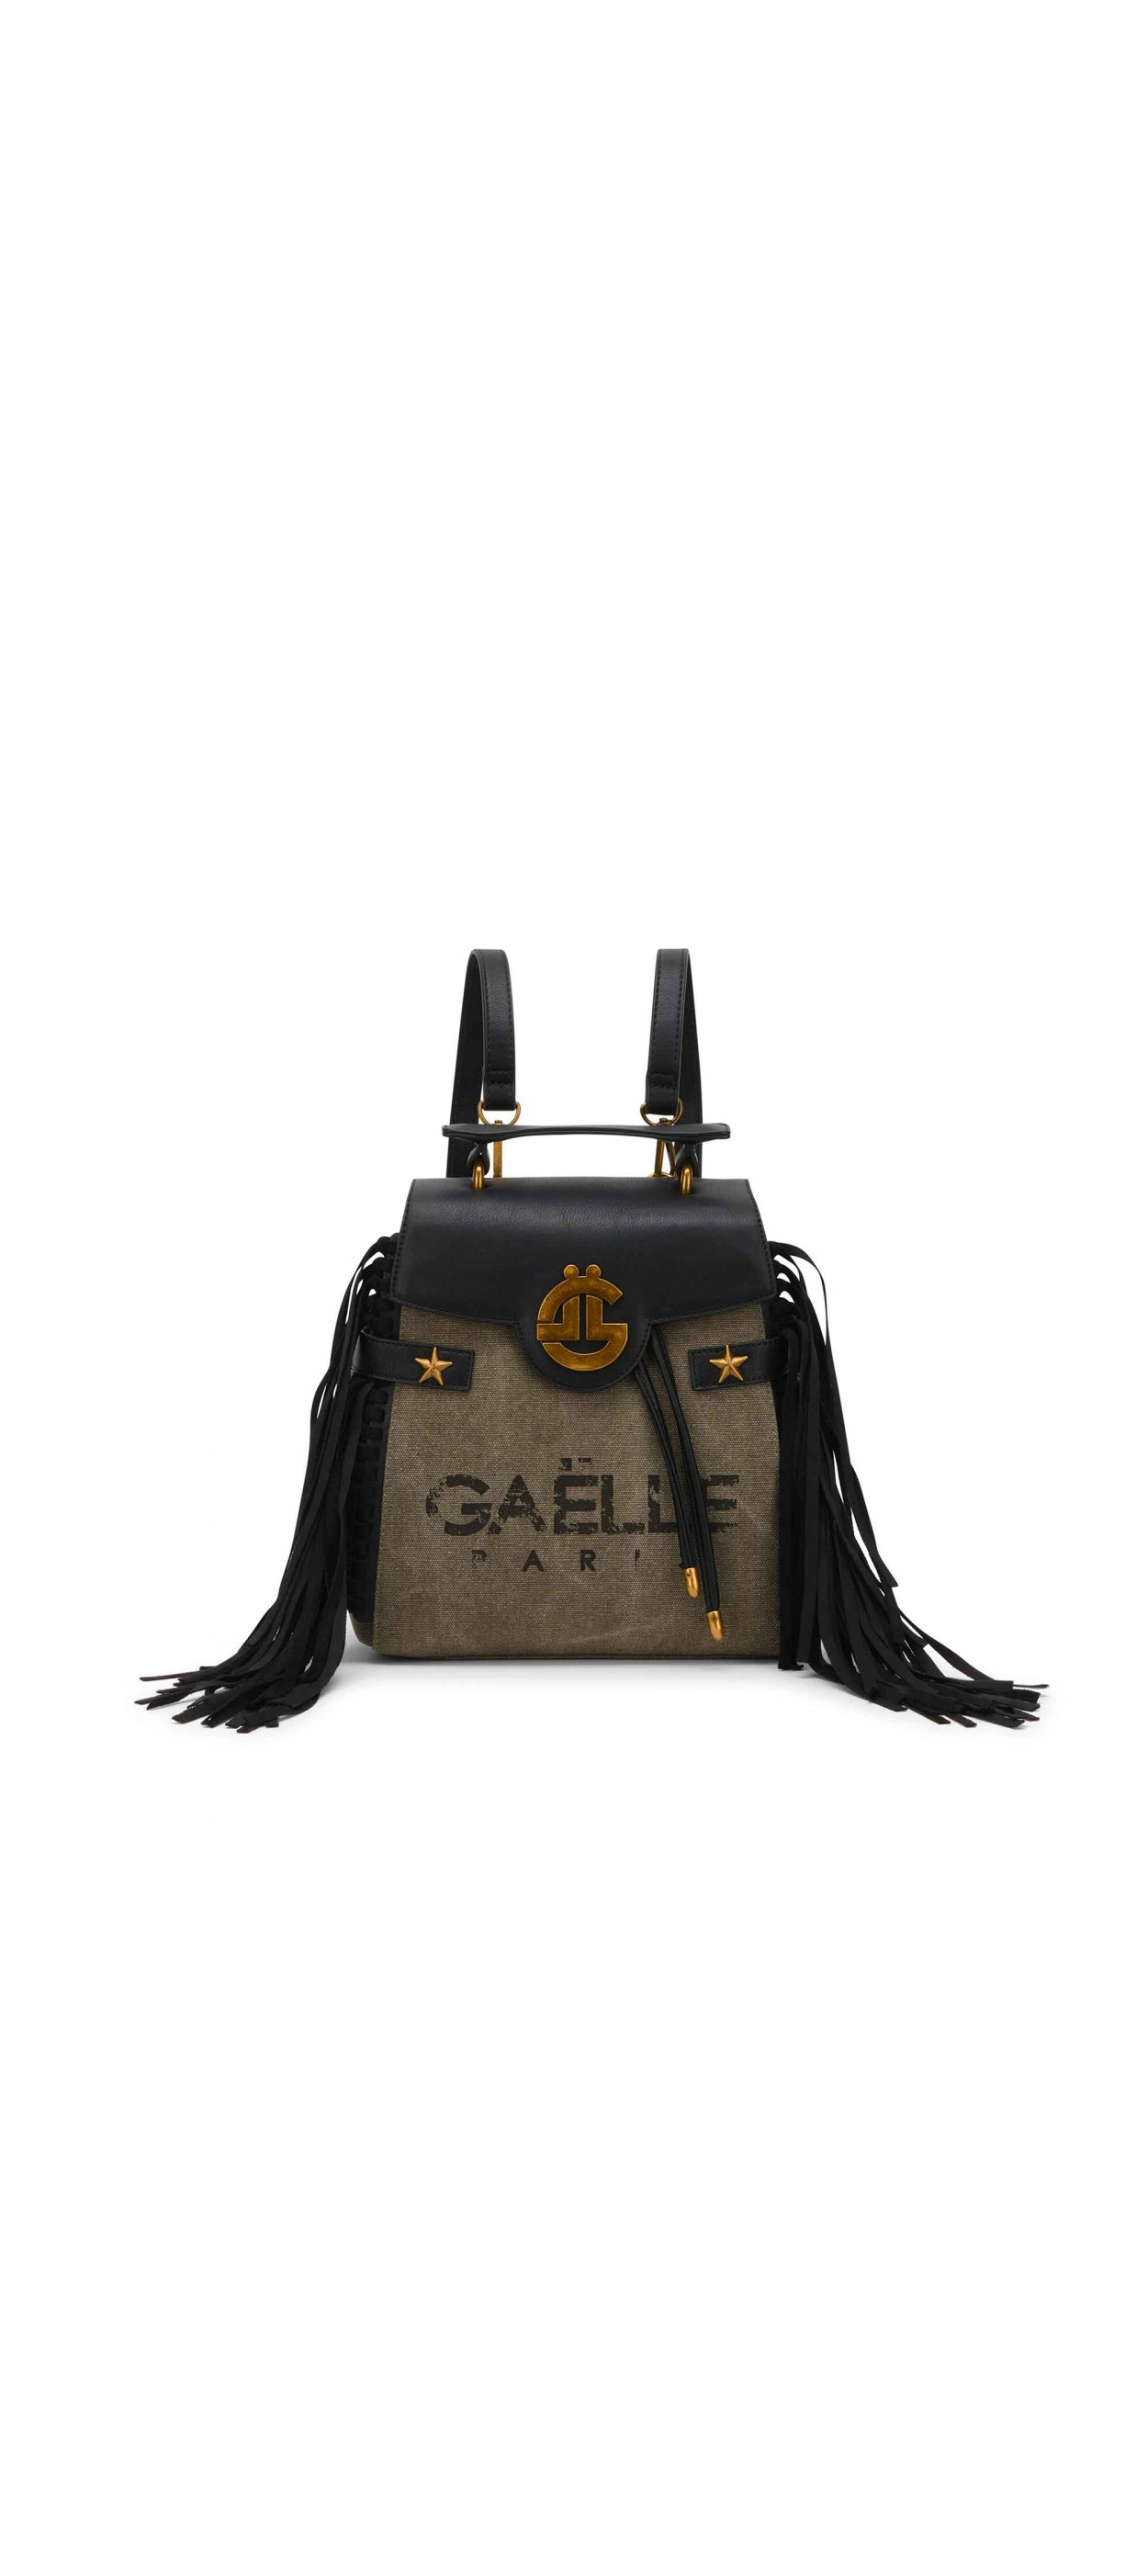 BACKPAK - GBDA1921 - GAELLE PARIS